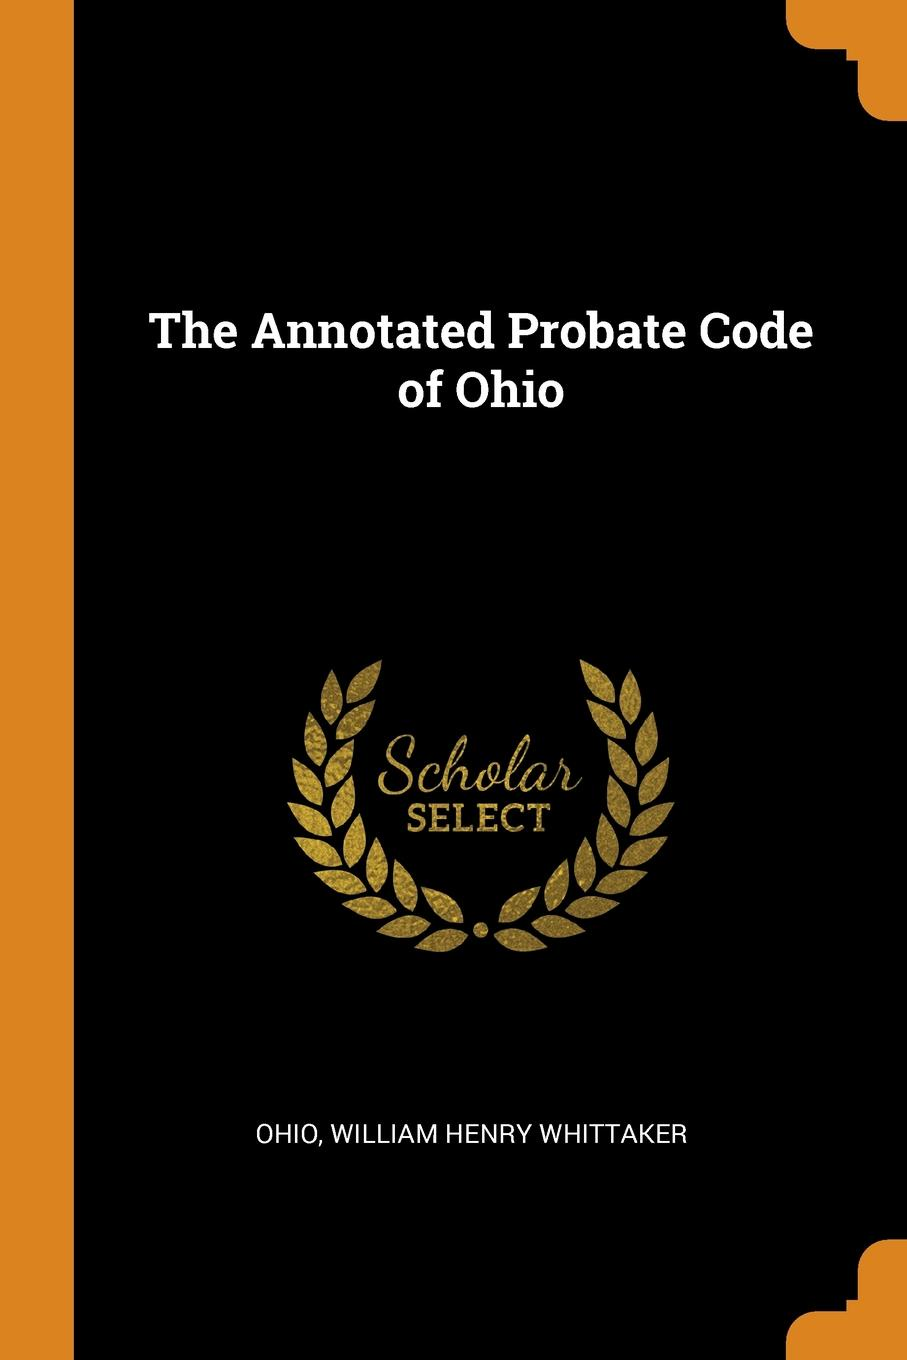 The Annotated Probate Code of Ohio. Ohio, William Henry Whittaker